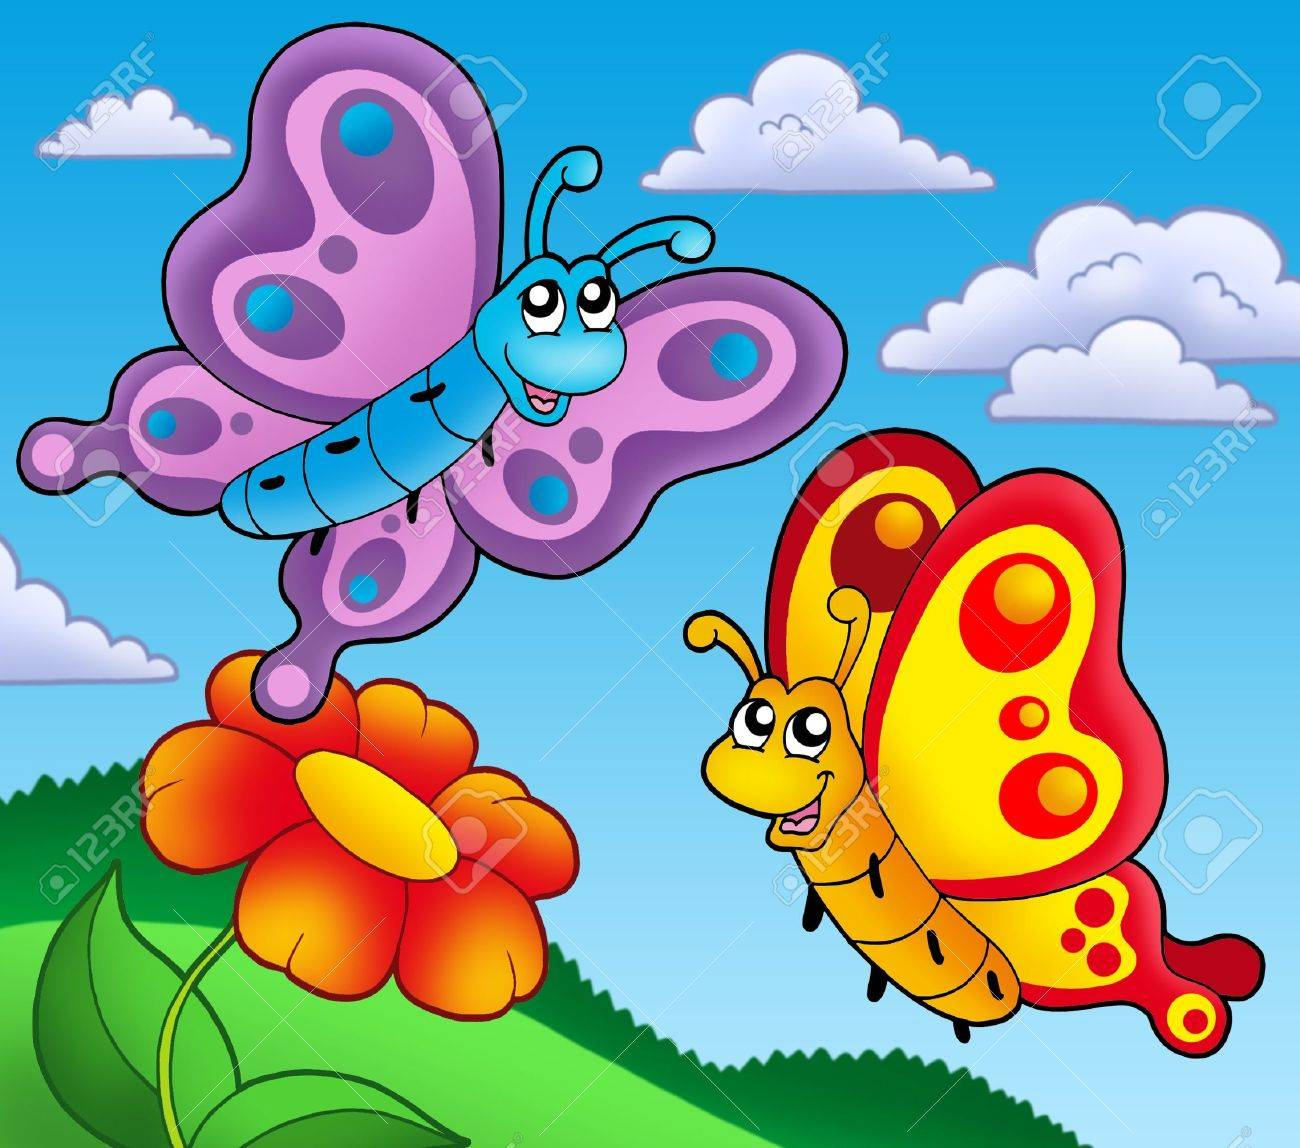 two butterflies images u0026 stock pictures royalty free two